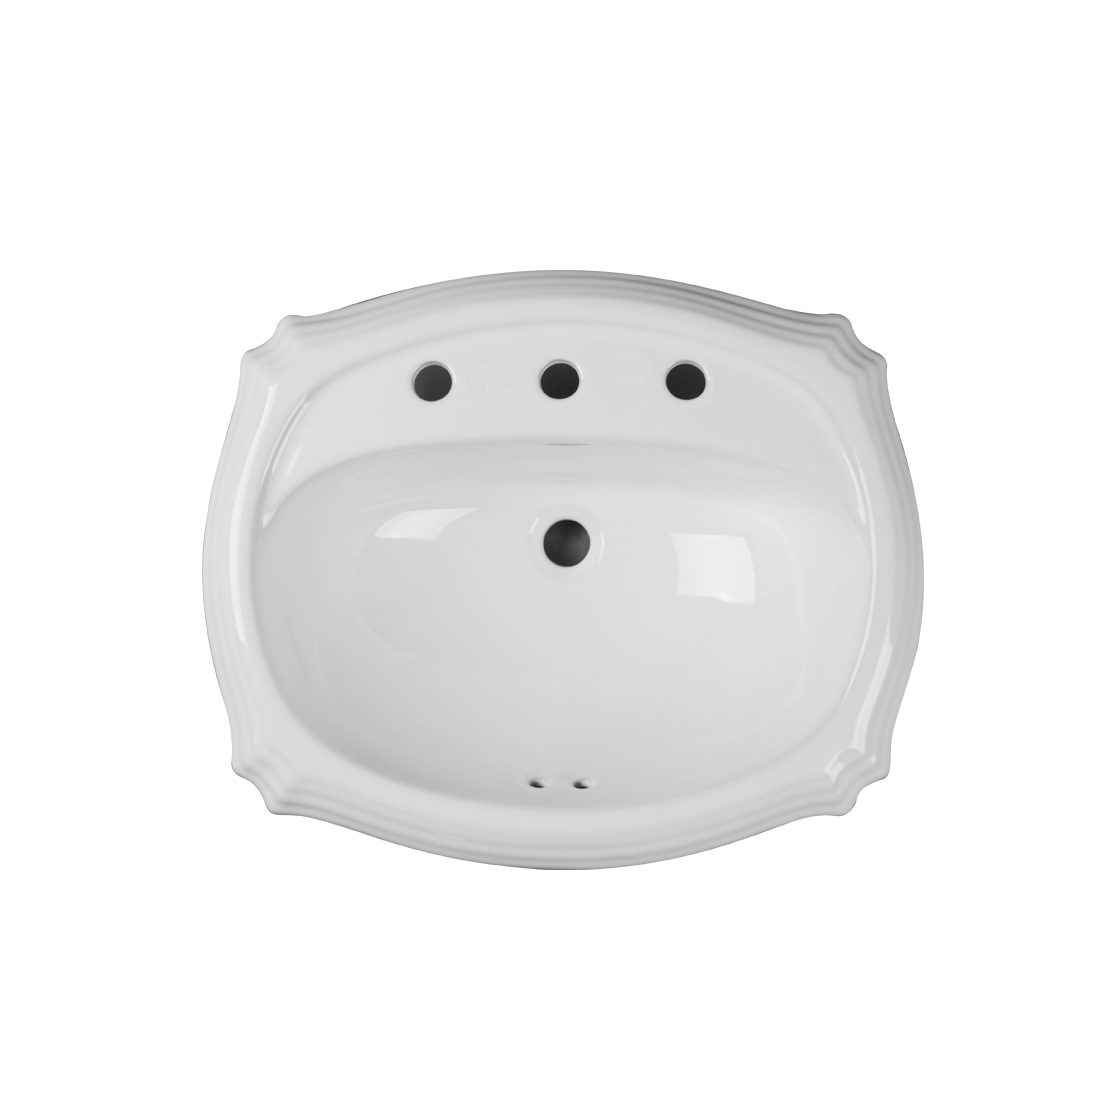 Anchorage Lavatory 3Hole 8inch White Up View